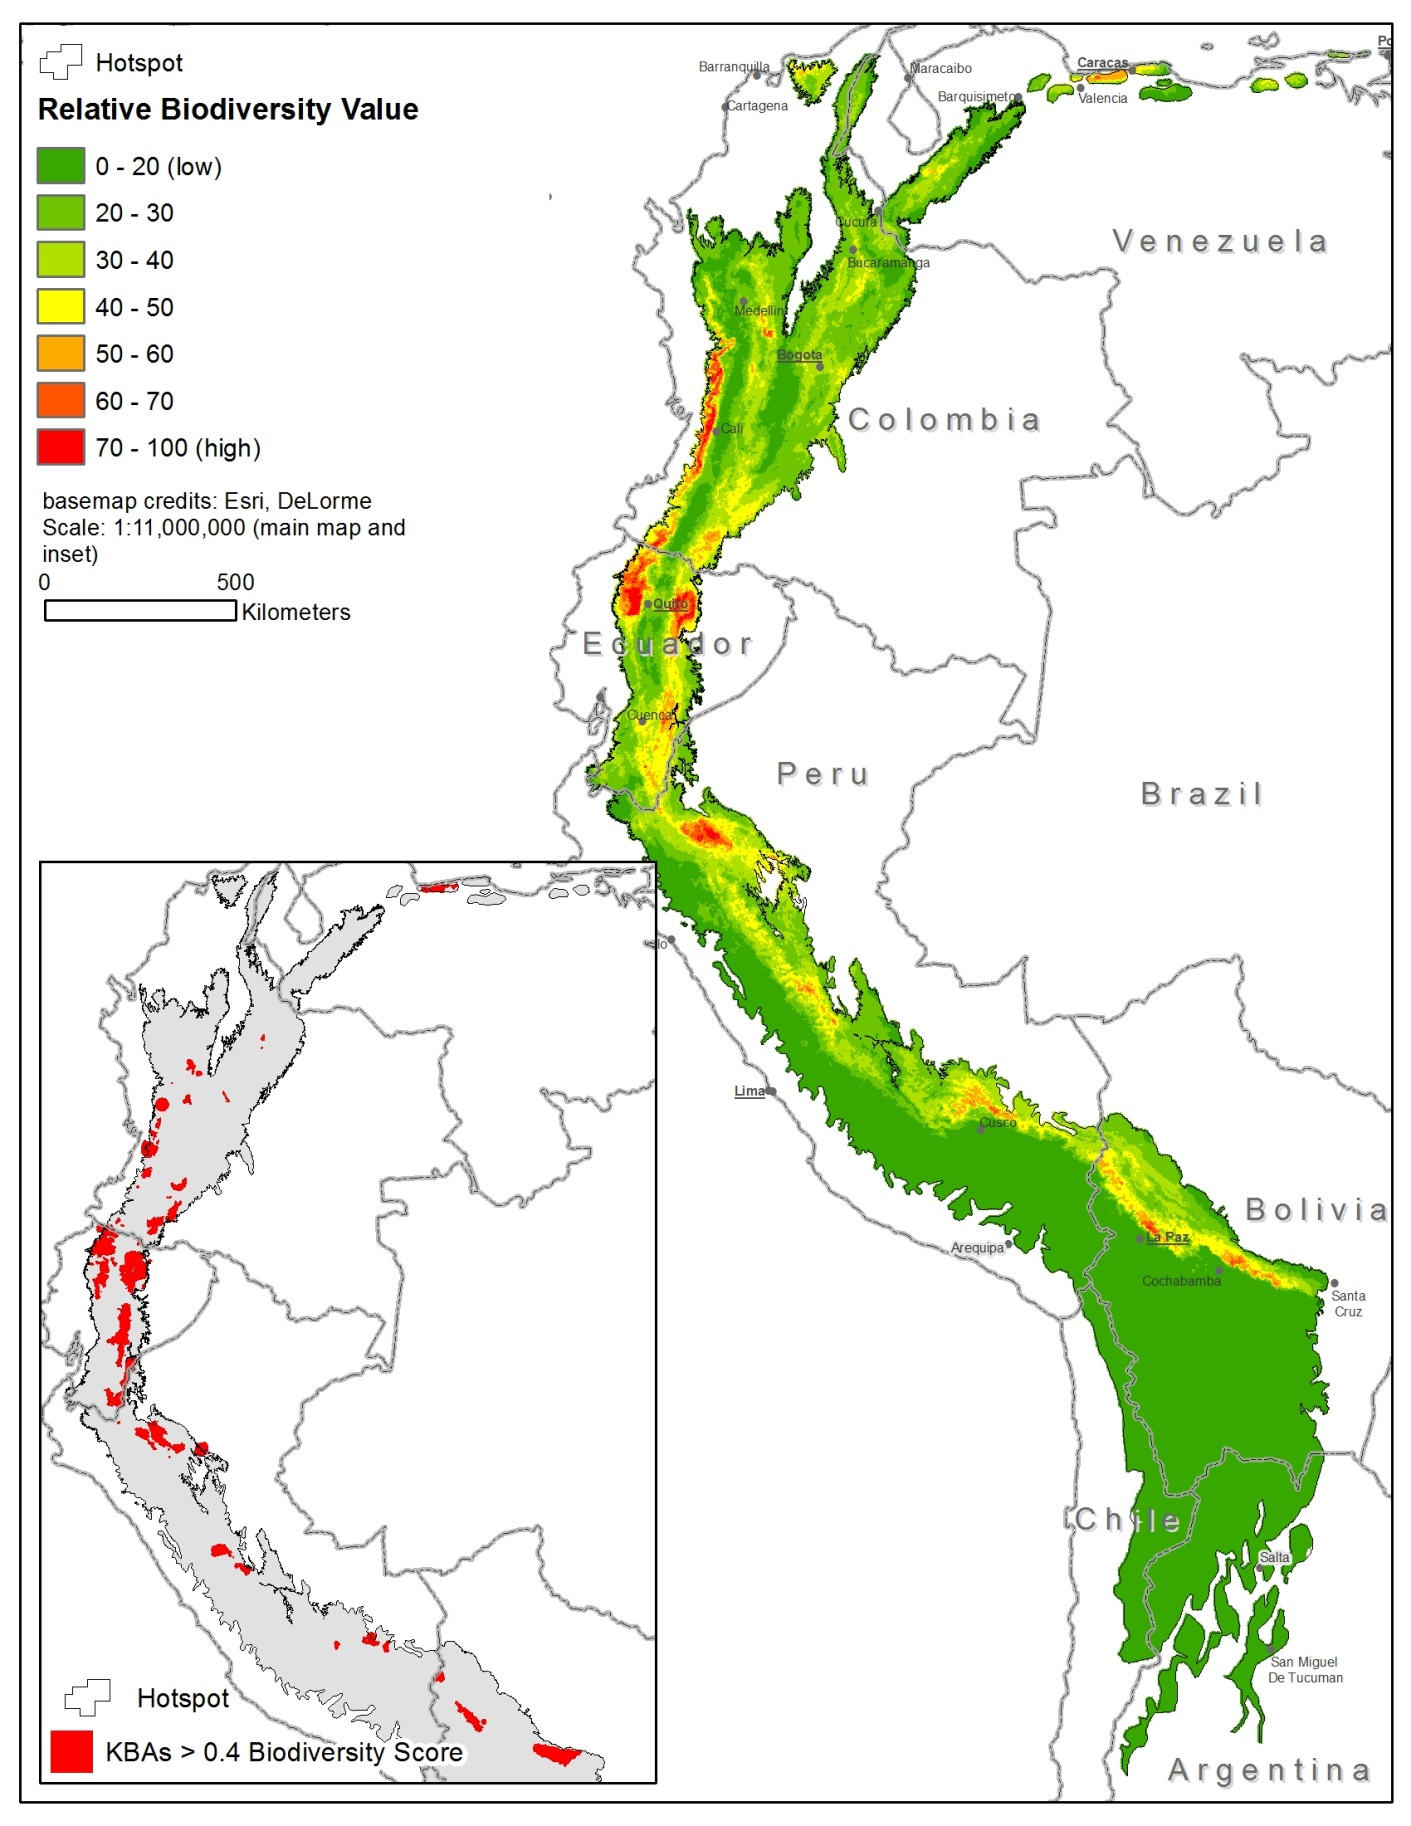 The ecosystem profile identifies the hotspot's Key Biodiversity Areas and their relative biodiversity value.